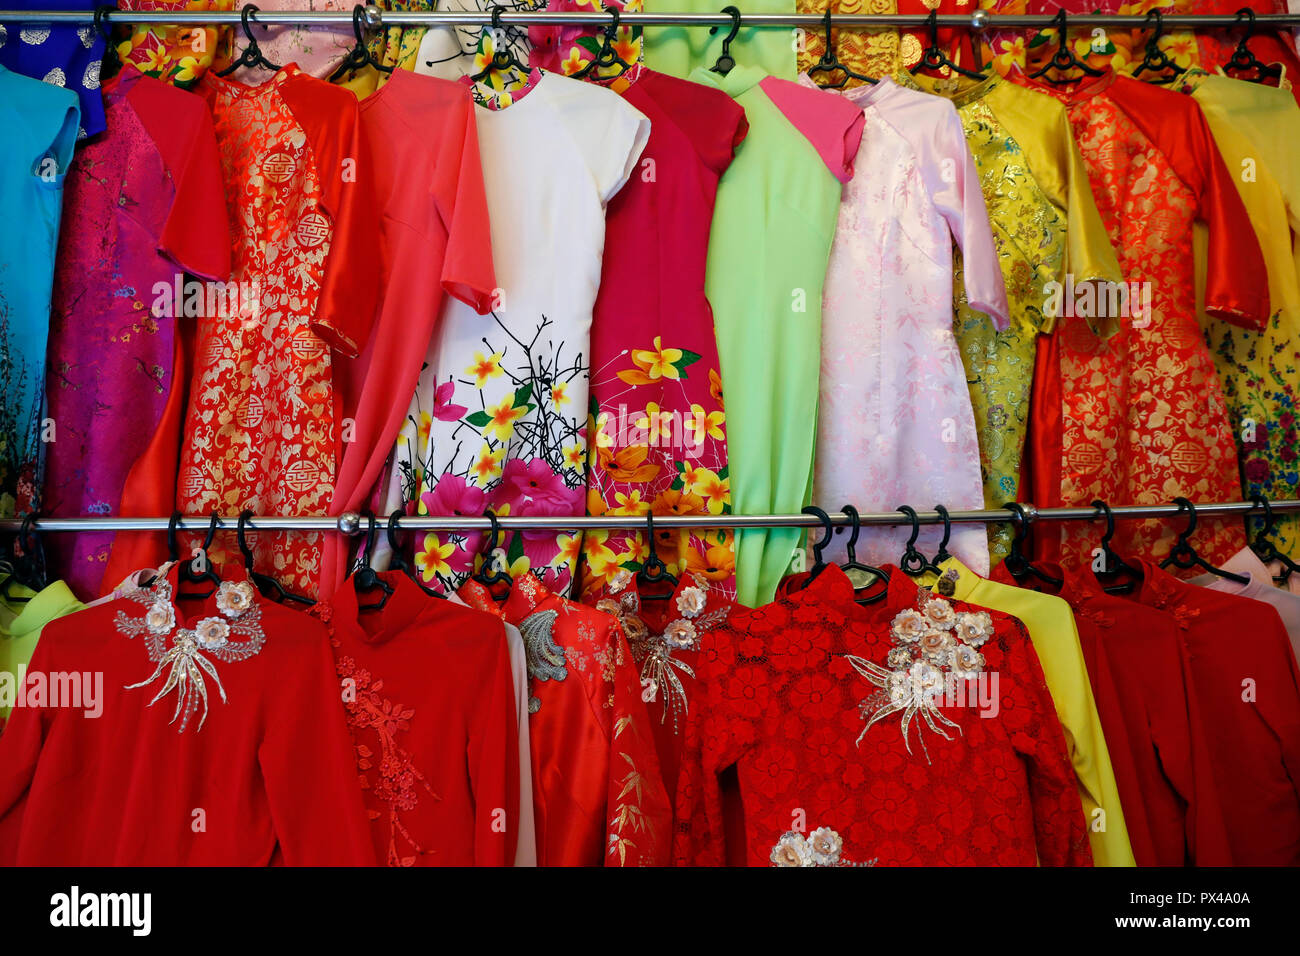 37f503e9d Colorful Vietnamese traditional long dress Ao Dai for sale in a shop. Ho  Chi Minh City. Vietnam.